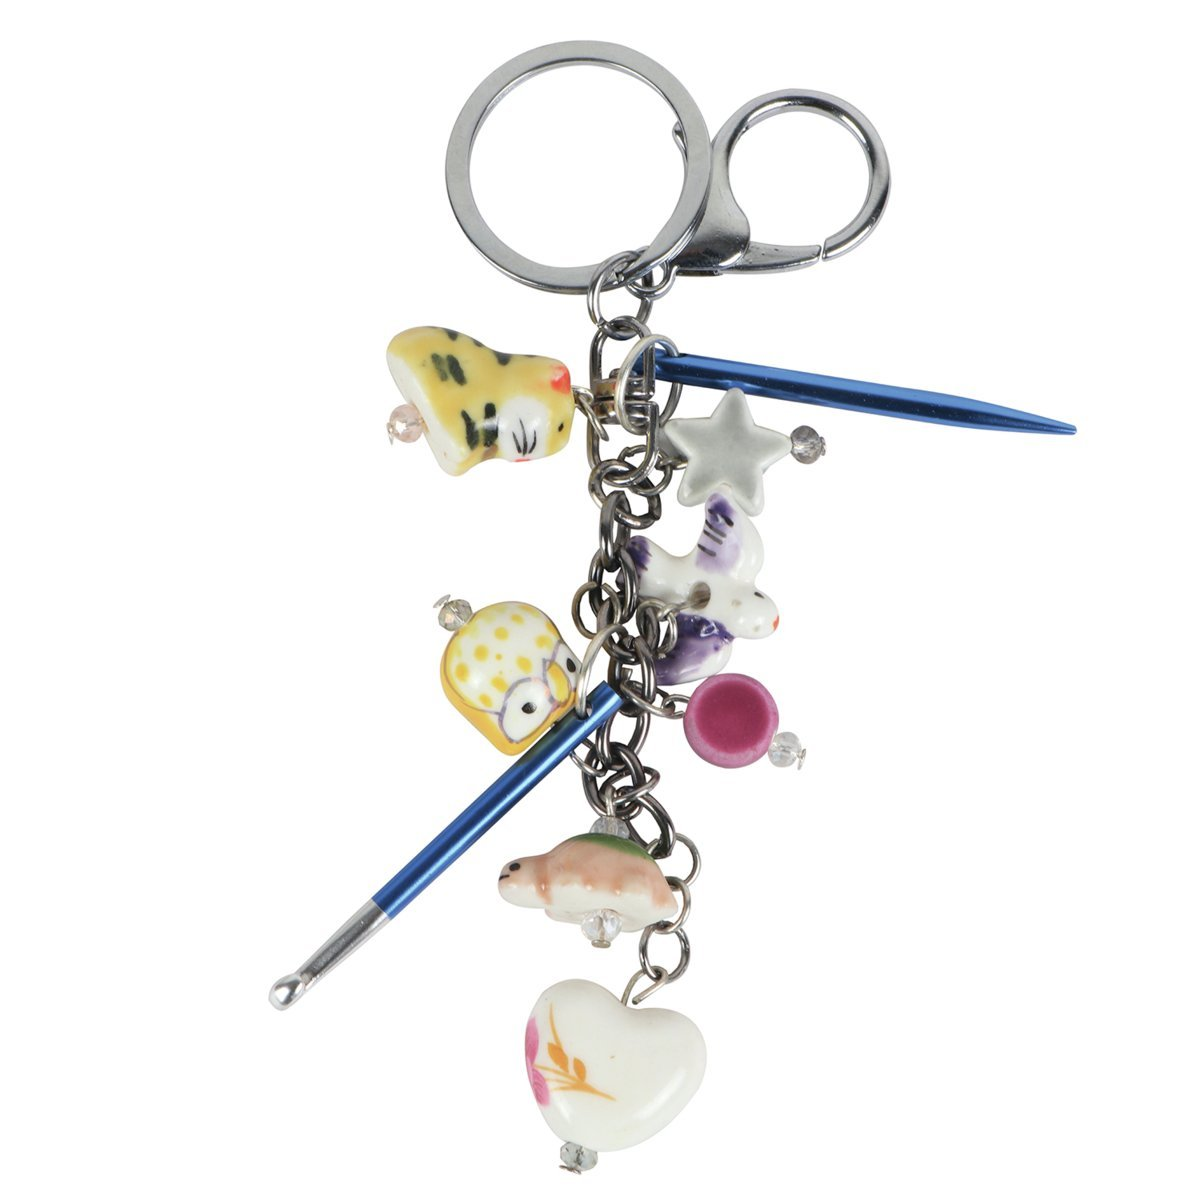 KnitPro Knitting Charm Passion